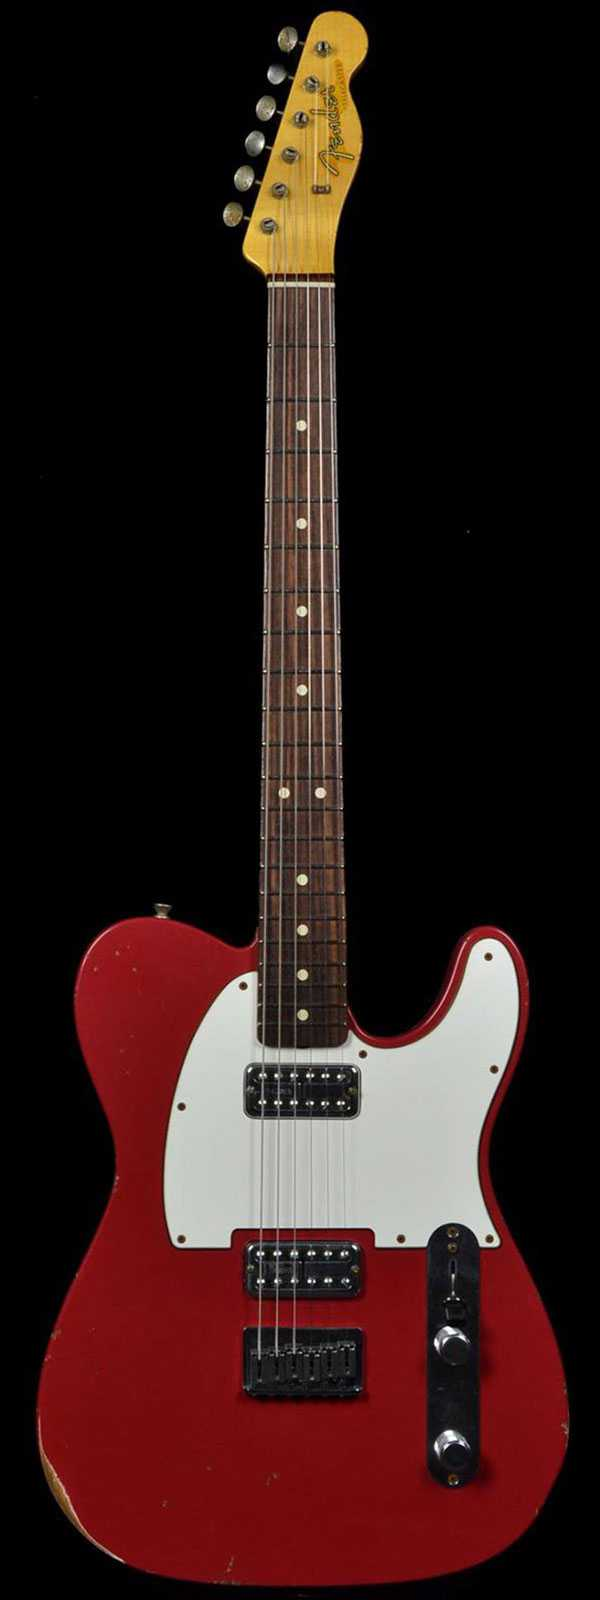 Fender 1963 Custom Relic Telecaster TV Jones Classic Pickups Faded Dakota Red Preowned